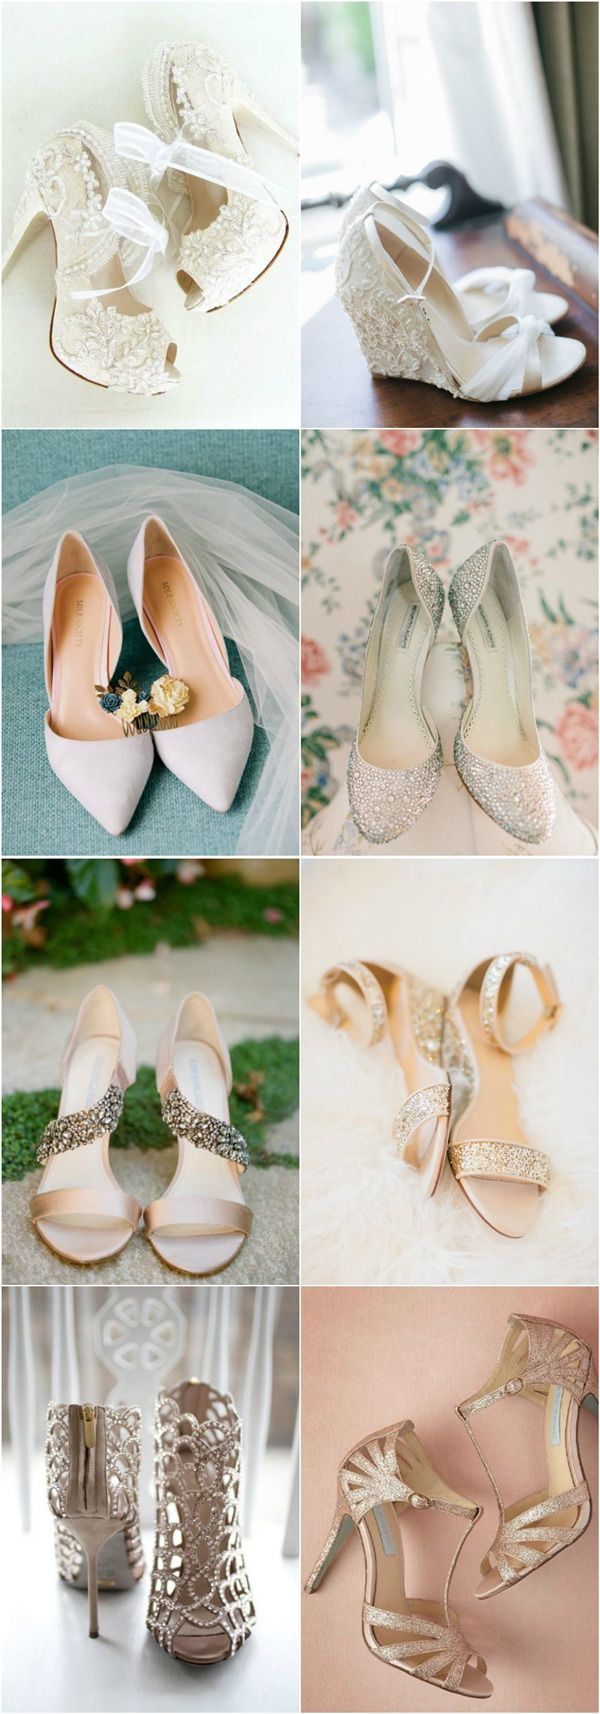 20 Most Wanted Wedding Shoes For Stylish Brides Unique